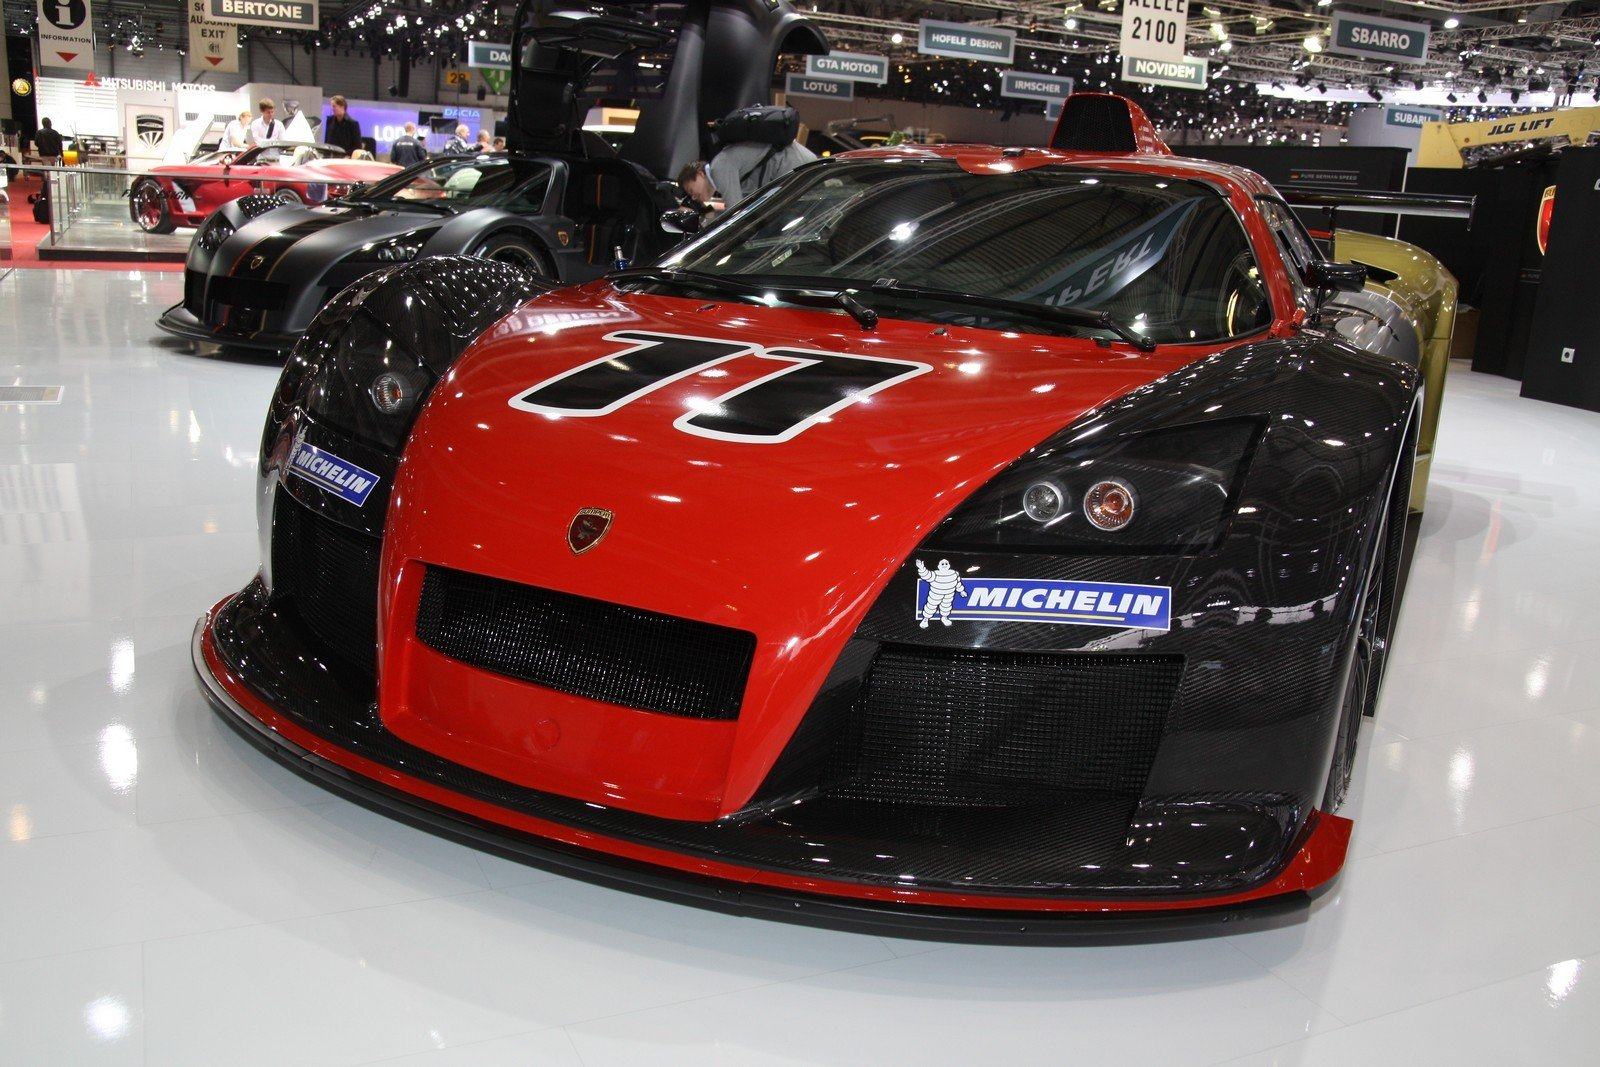 2012 gumpert apollo r picture 441354 car review top speed. Black Bedroom Furniture Sets. Home Design Ideas